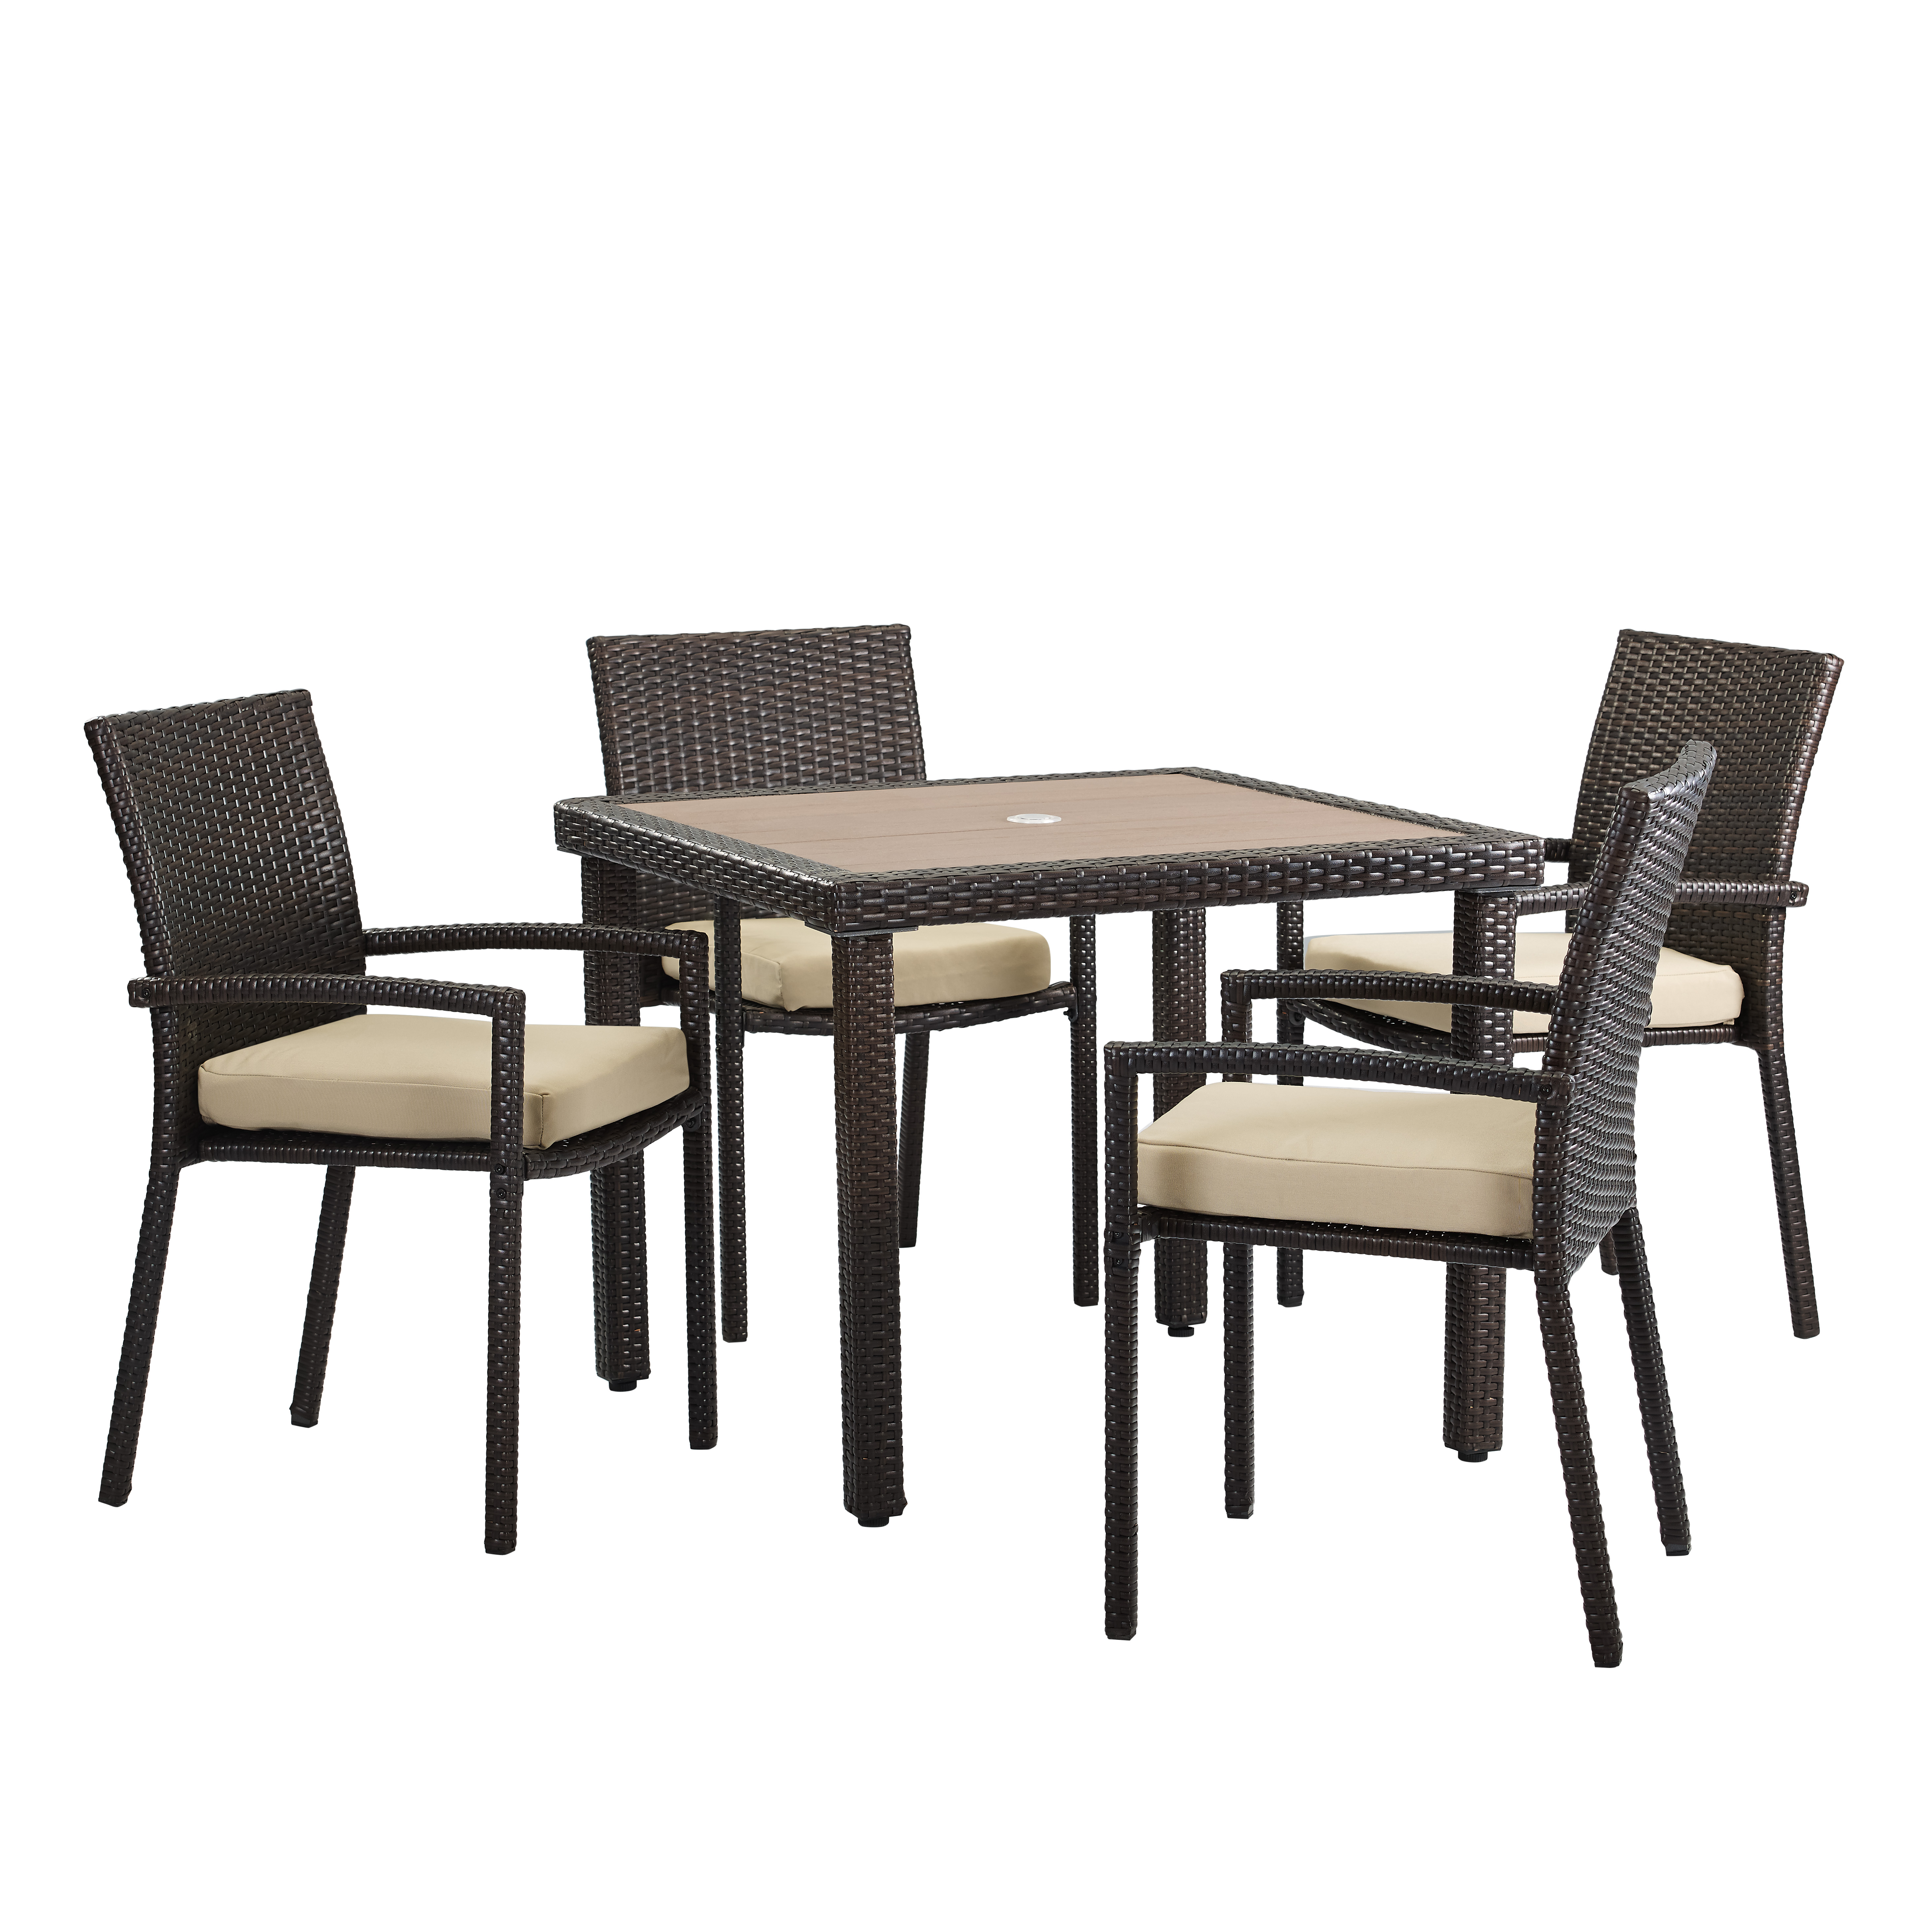 Positano 5-Piece Dining Set, Brown Wicker Rattan, Tan Cushions